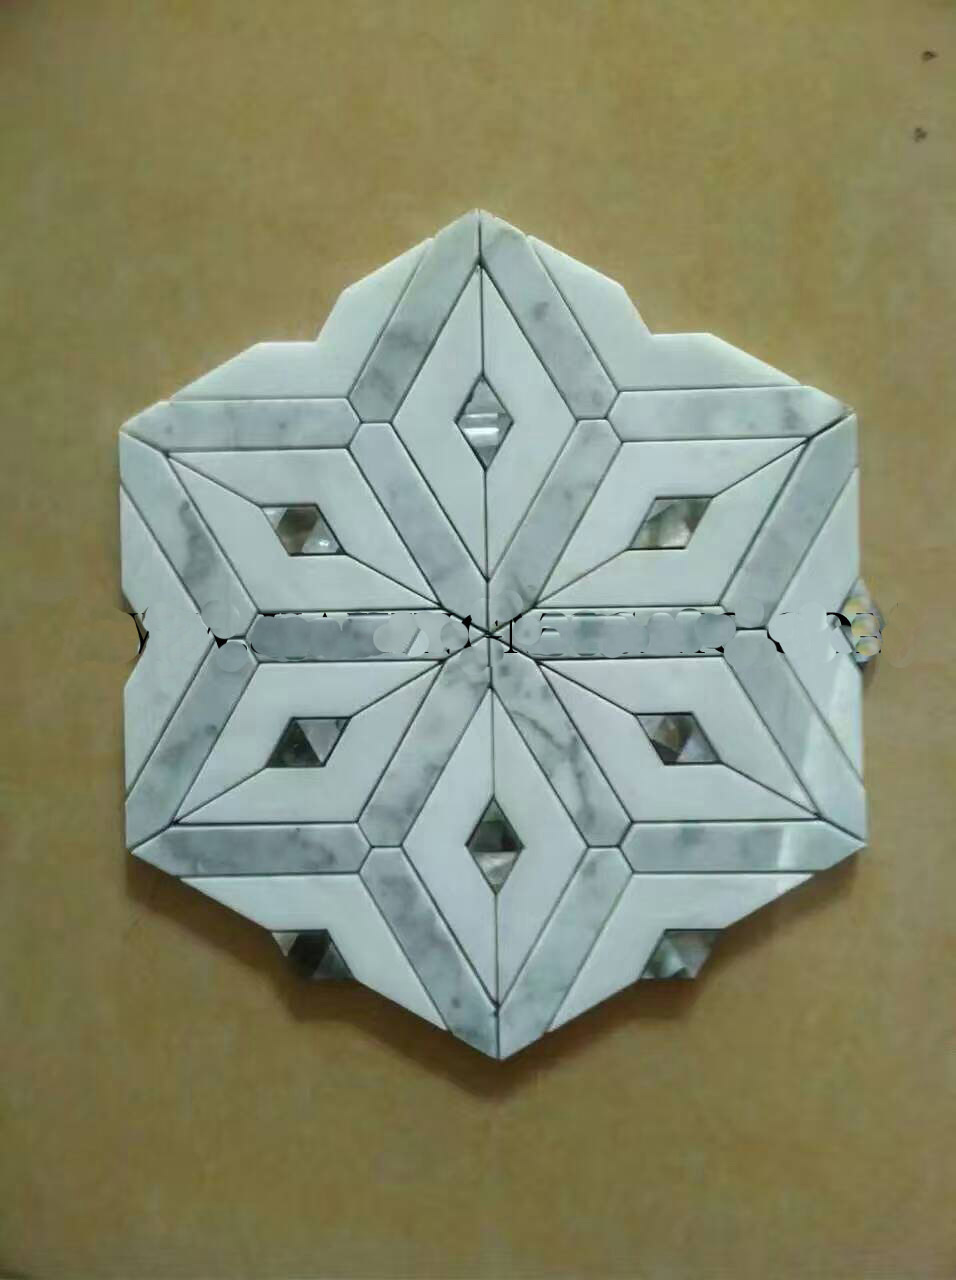 White carrara white marble new design in 2016